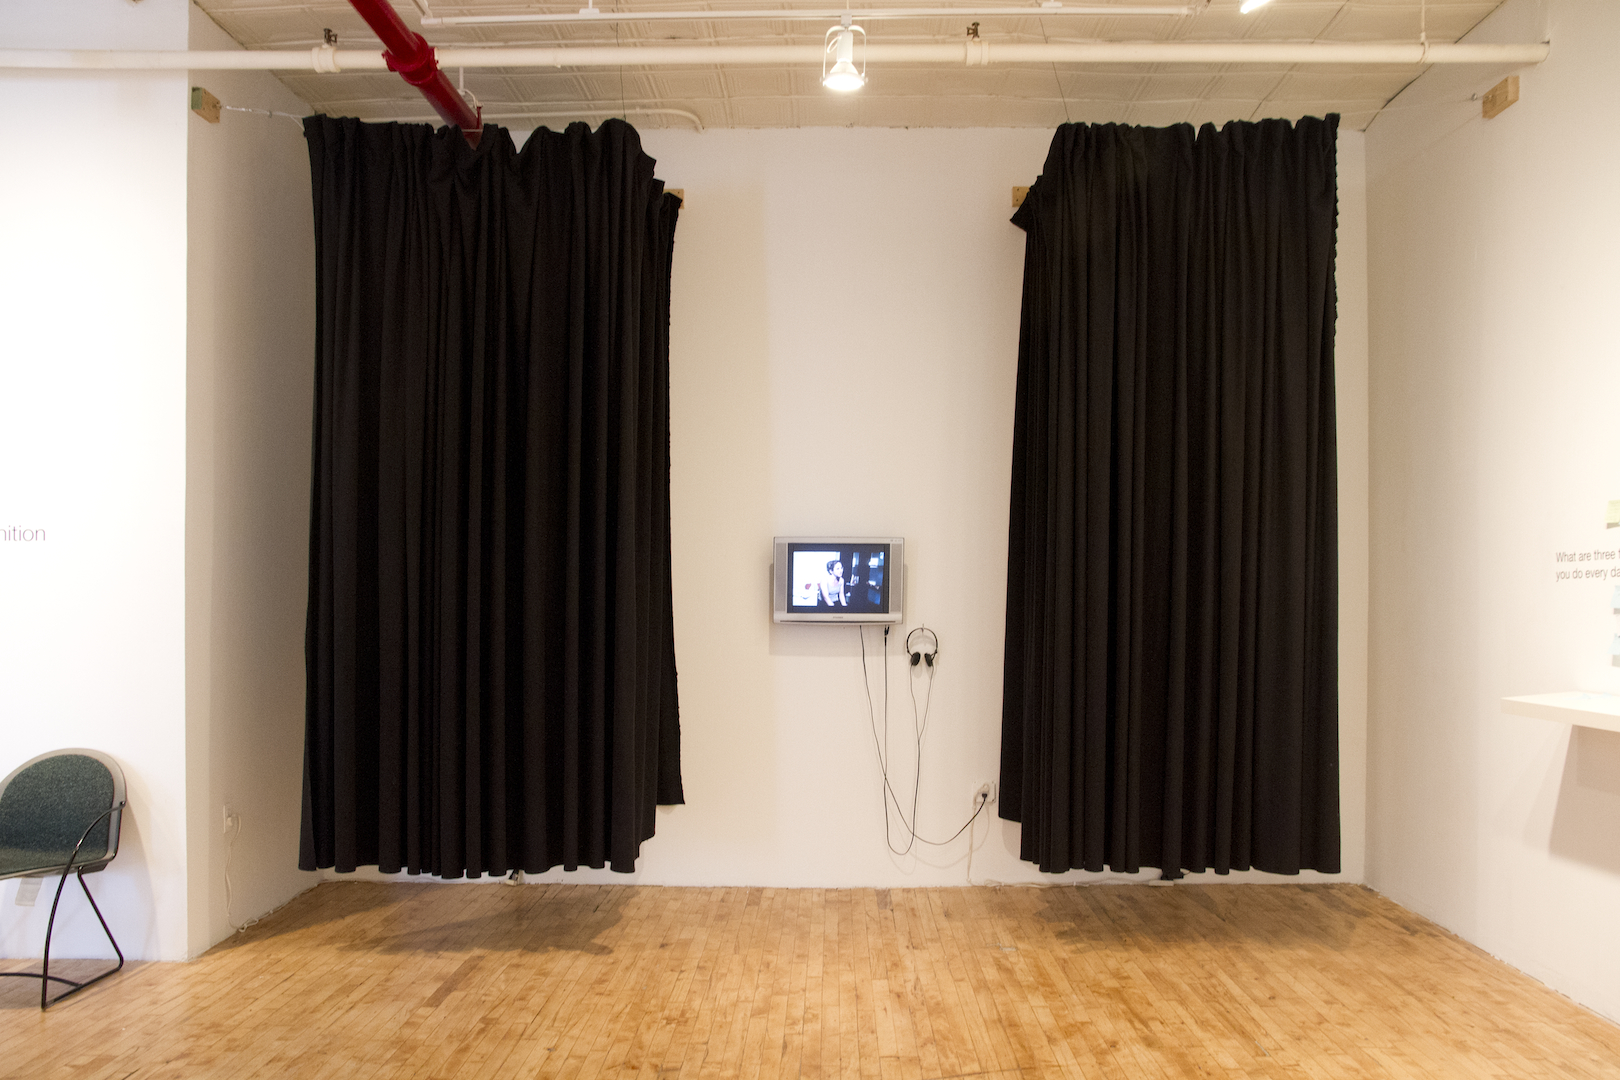 Installation View: Screening Rooms, Free Consultations